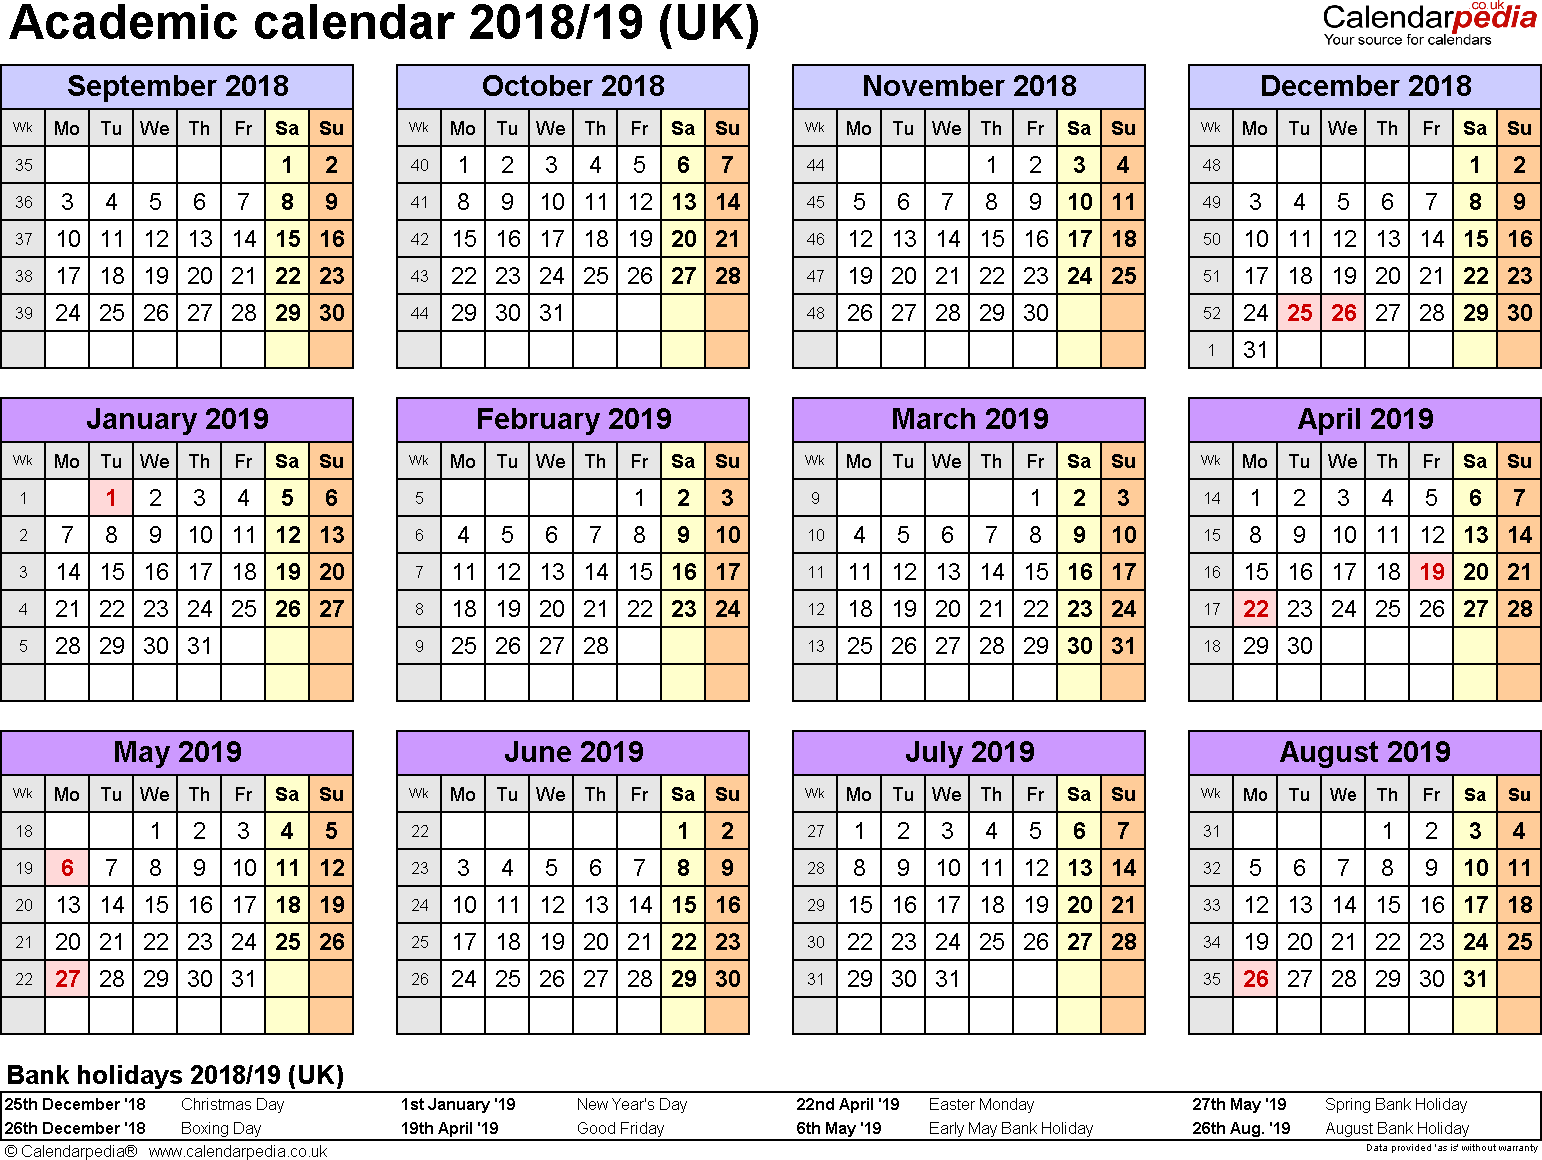 Template 4: Academic Year Calendars 2018/19 As Word Template, Year Overview,